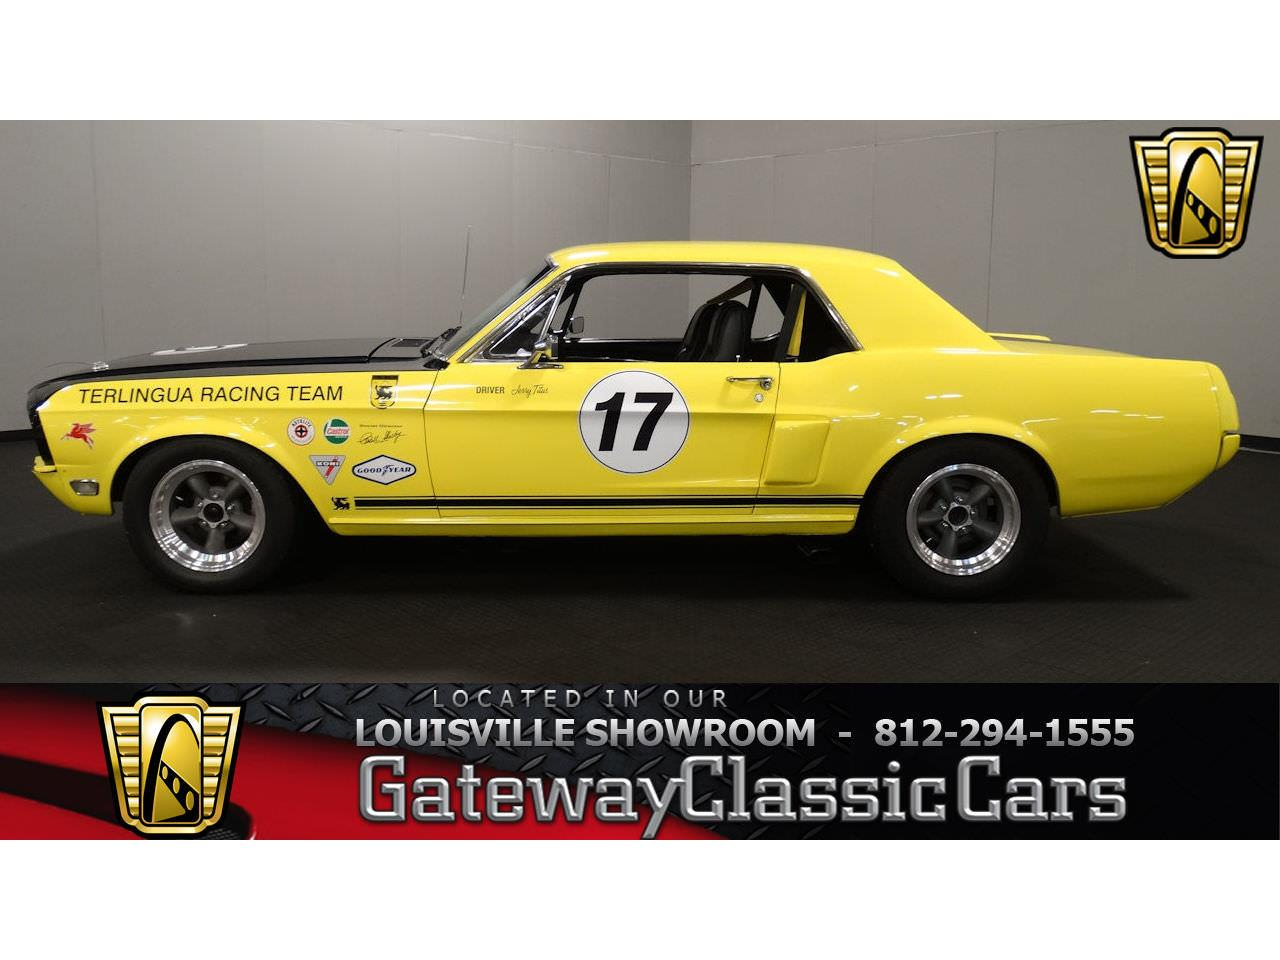 Large picture of 68 mustang obtc